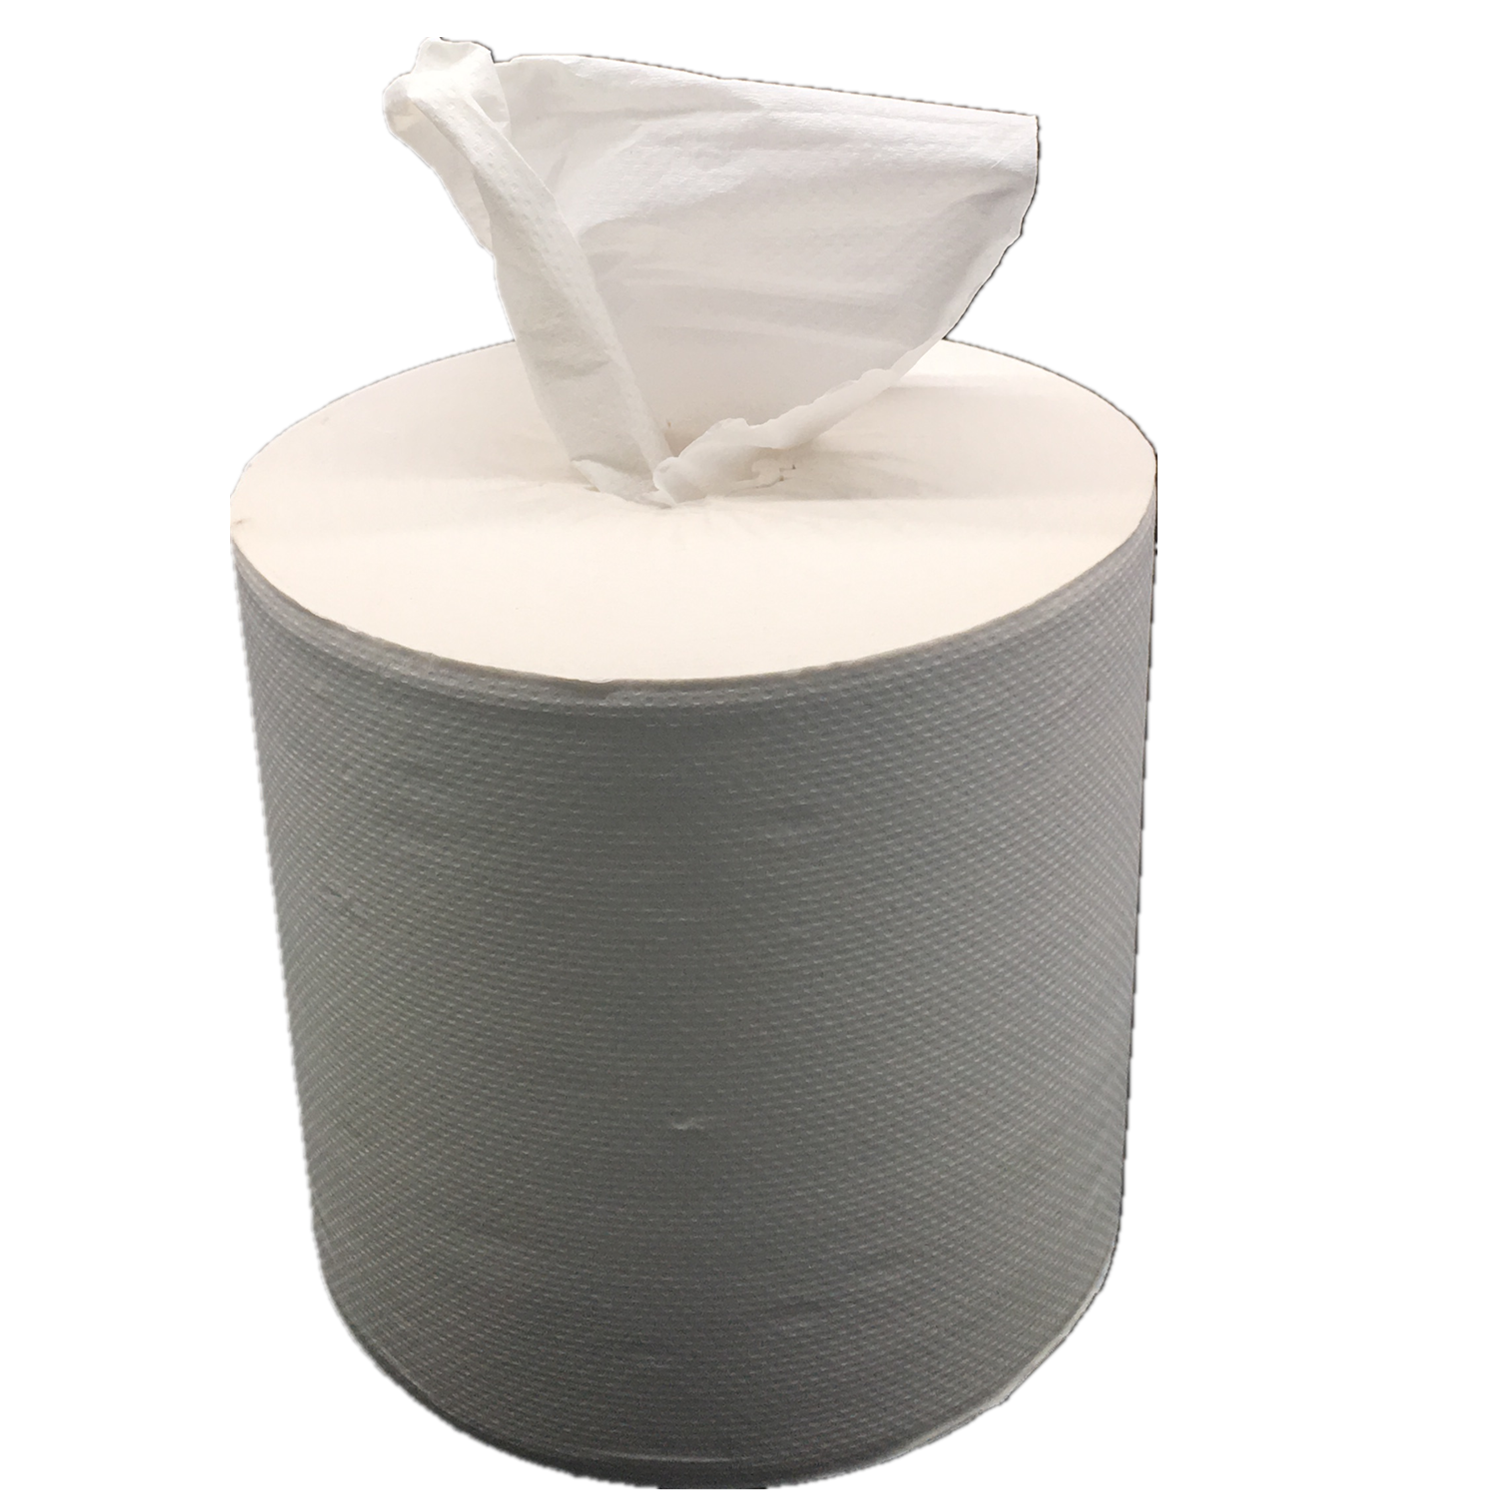 Hot Selling Luxury Soft Commercial Centerpull Paper Towel